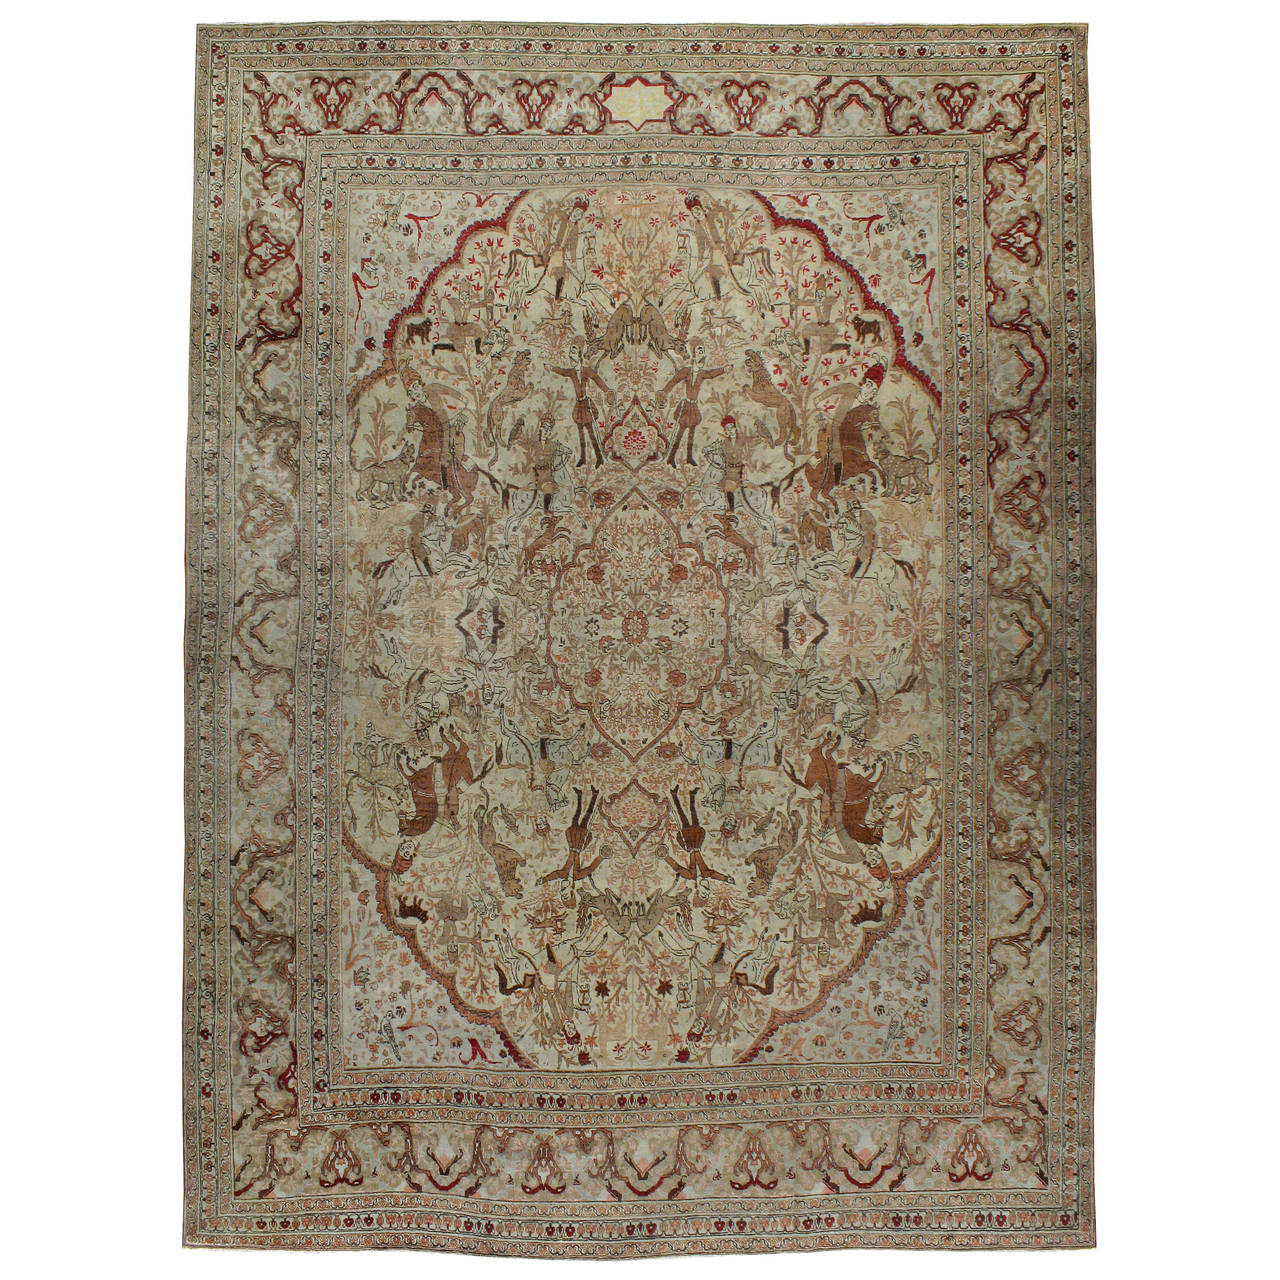 Antique Persian Tabriz Pictorial Rug For Sale